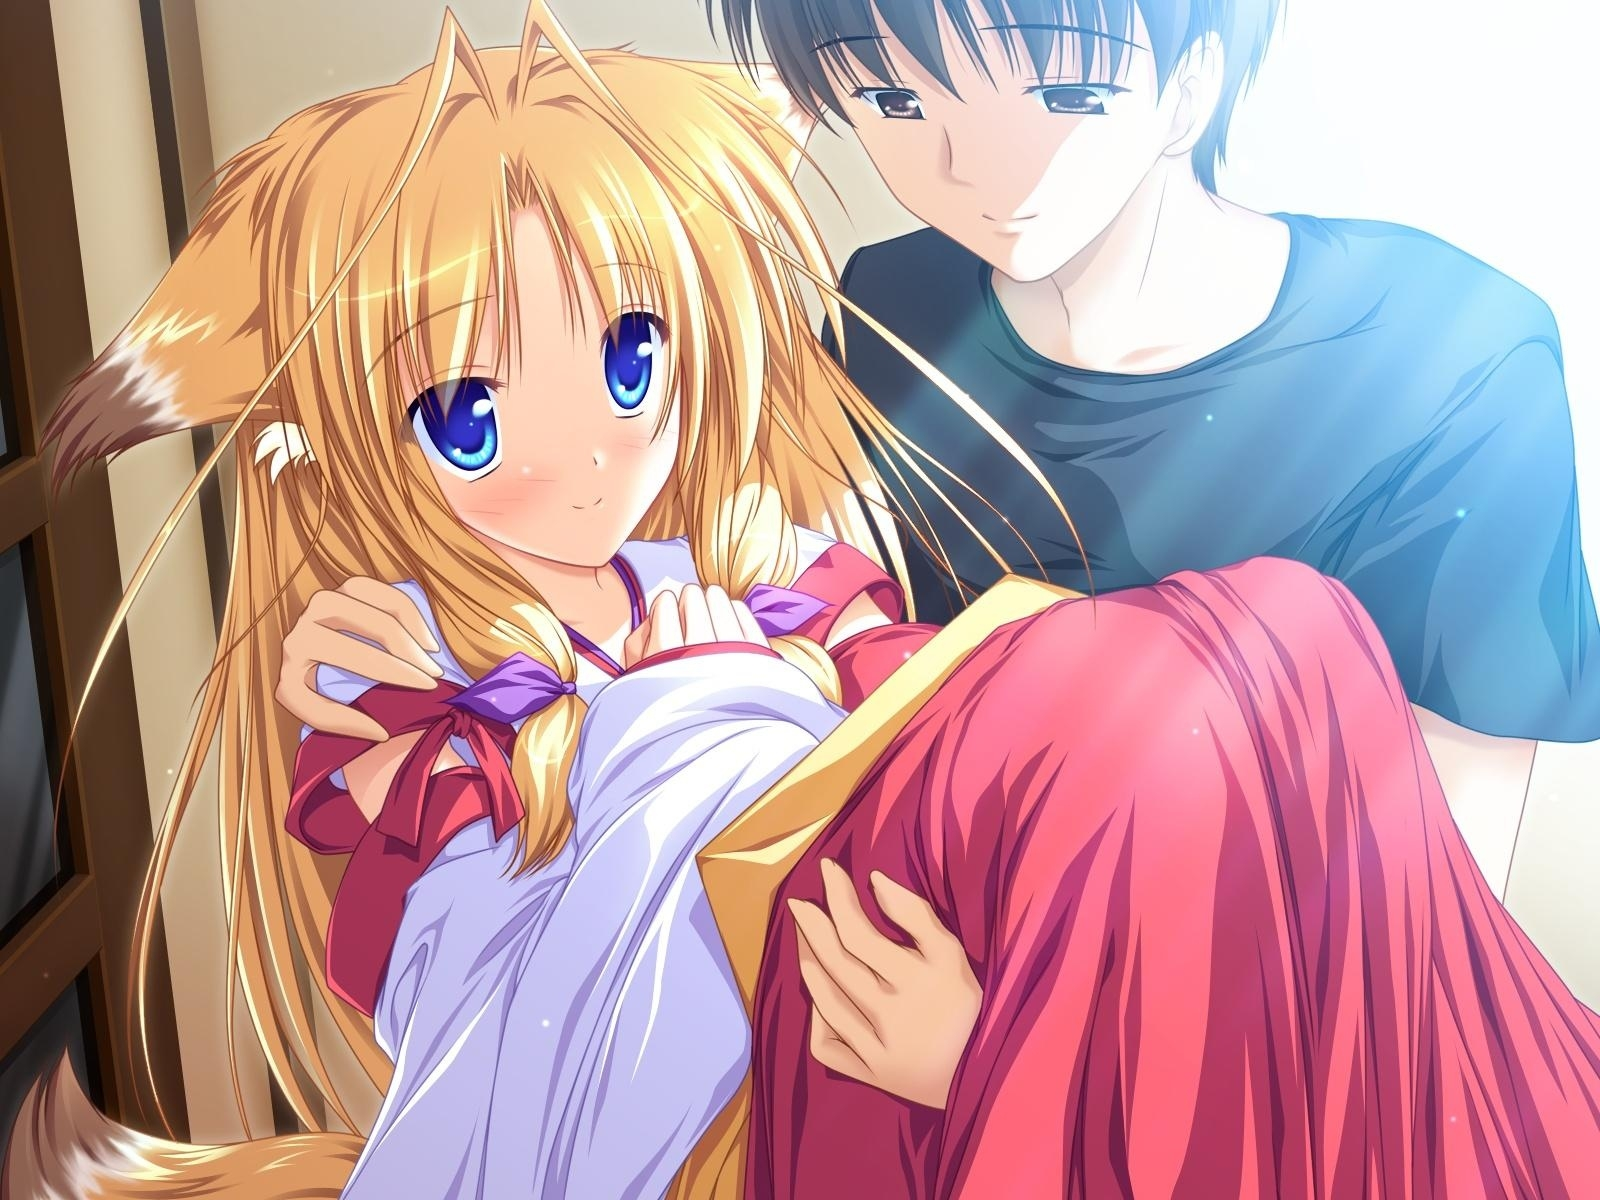 Cute Anime Couple HD Wallpapers | PixelsTalk Net